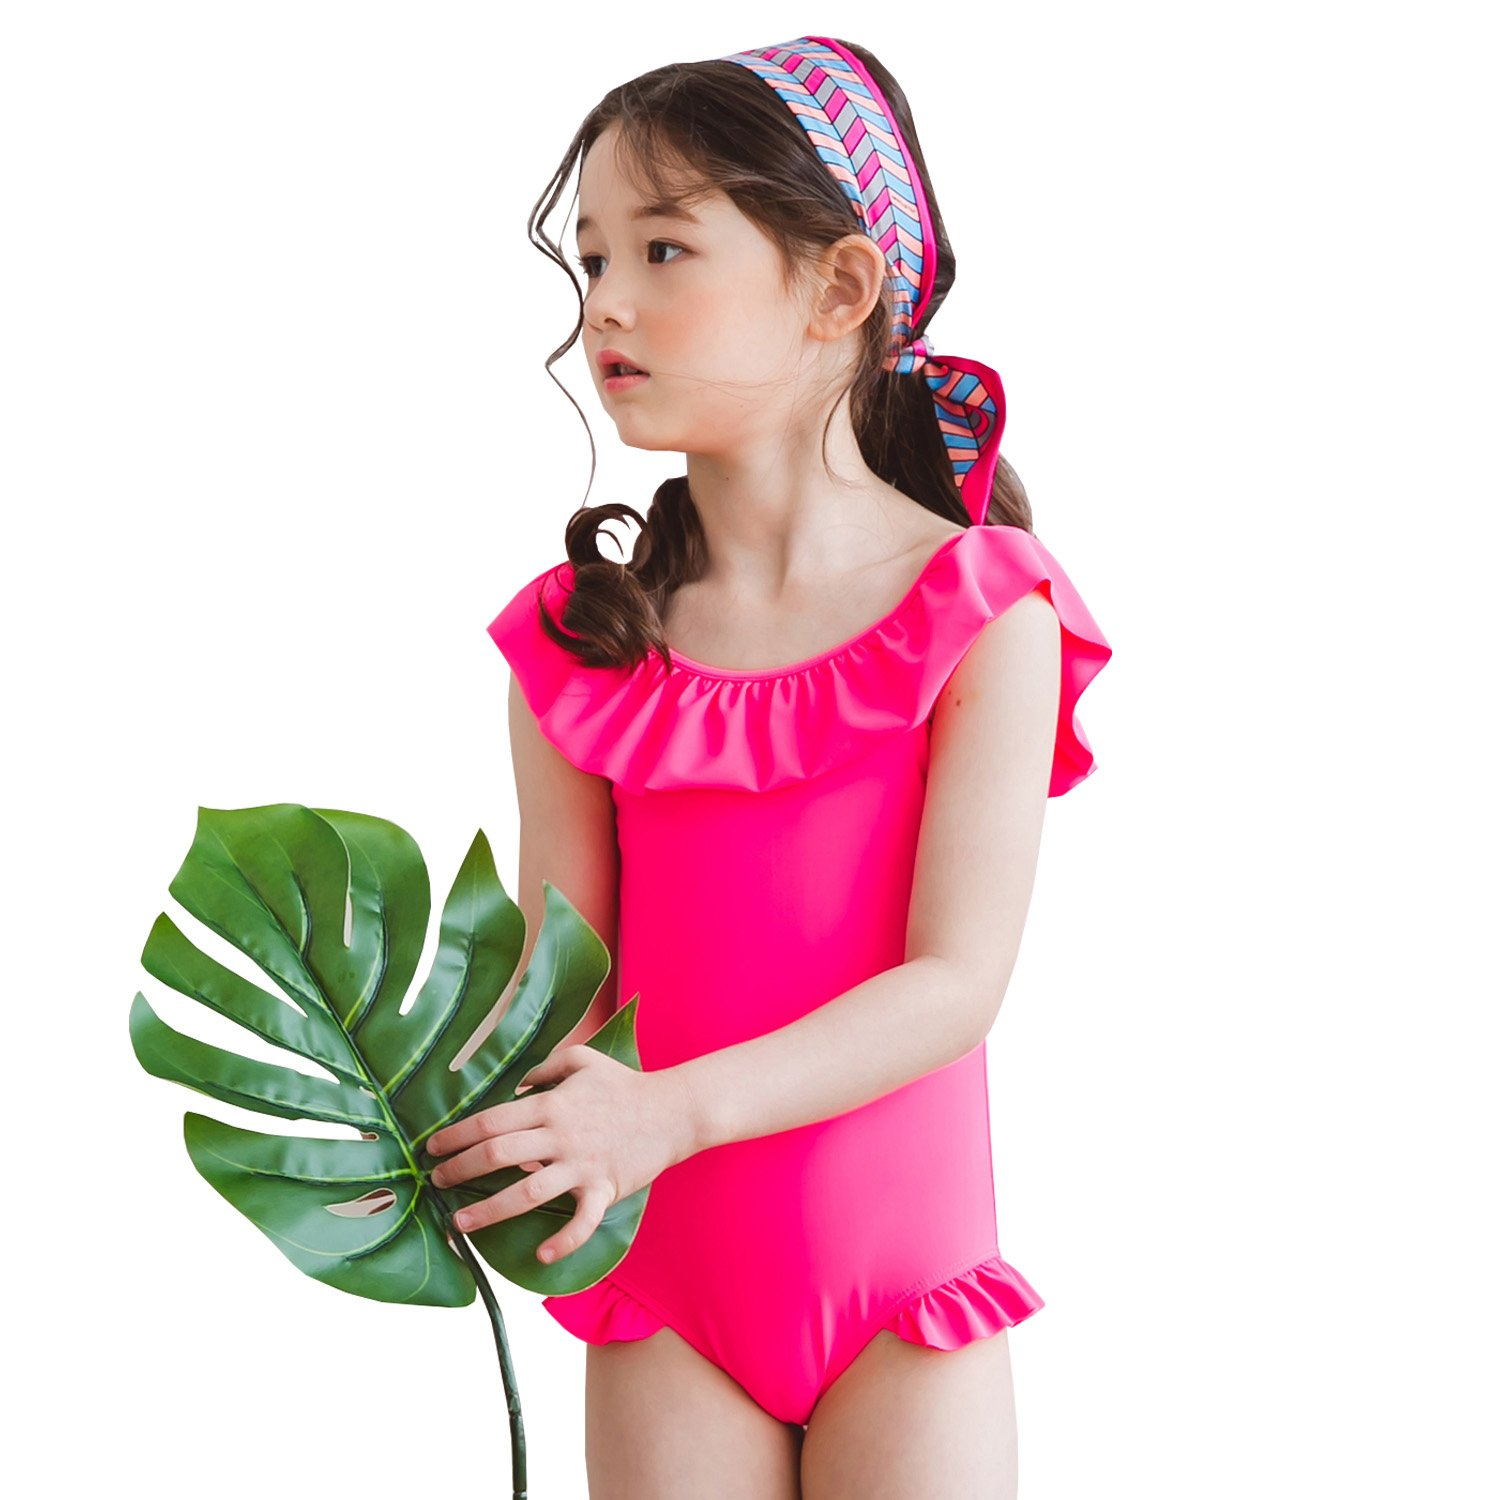 b7b2d9f5e16 Amazon.com: Tablier Kids Girls Ruffle One Piece Swimsuit: Clothing